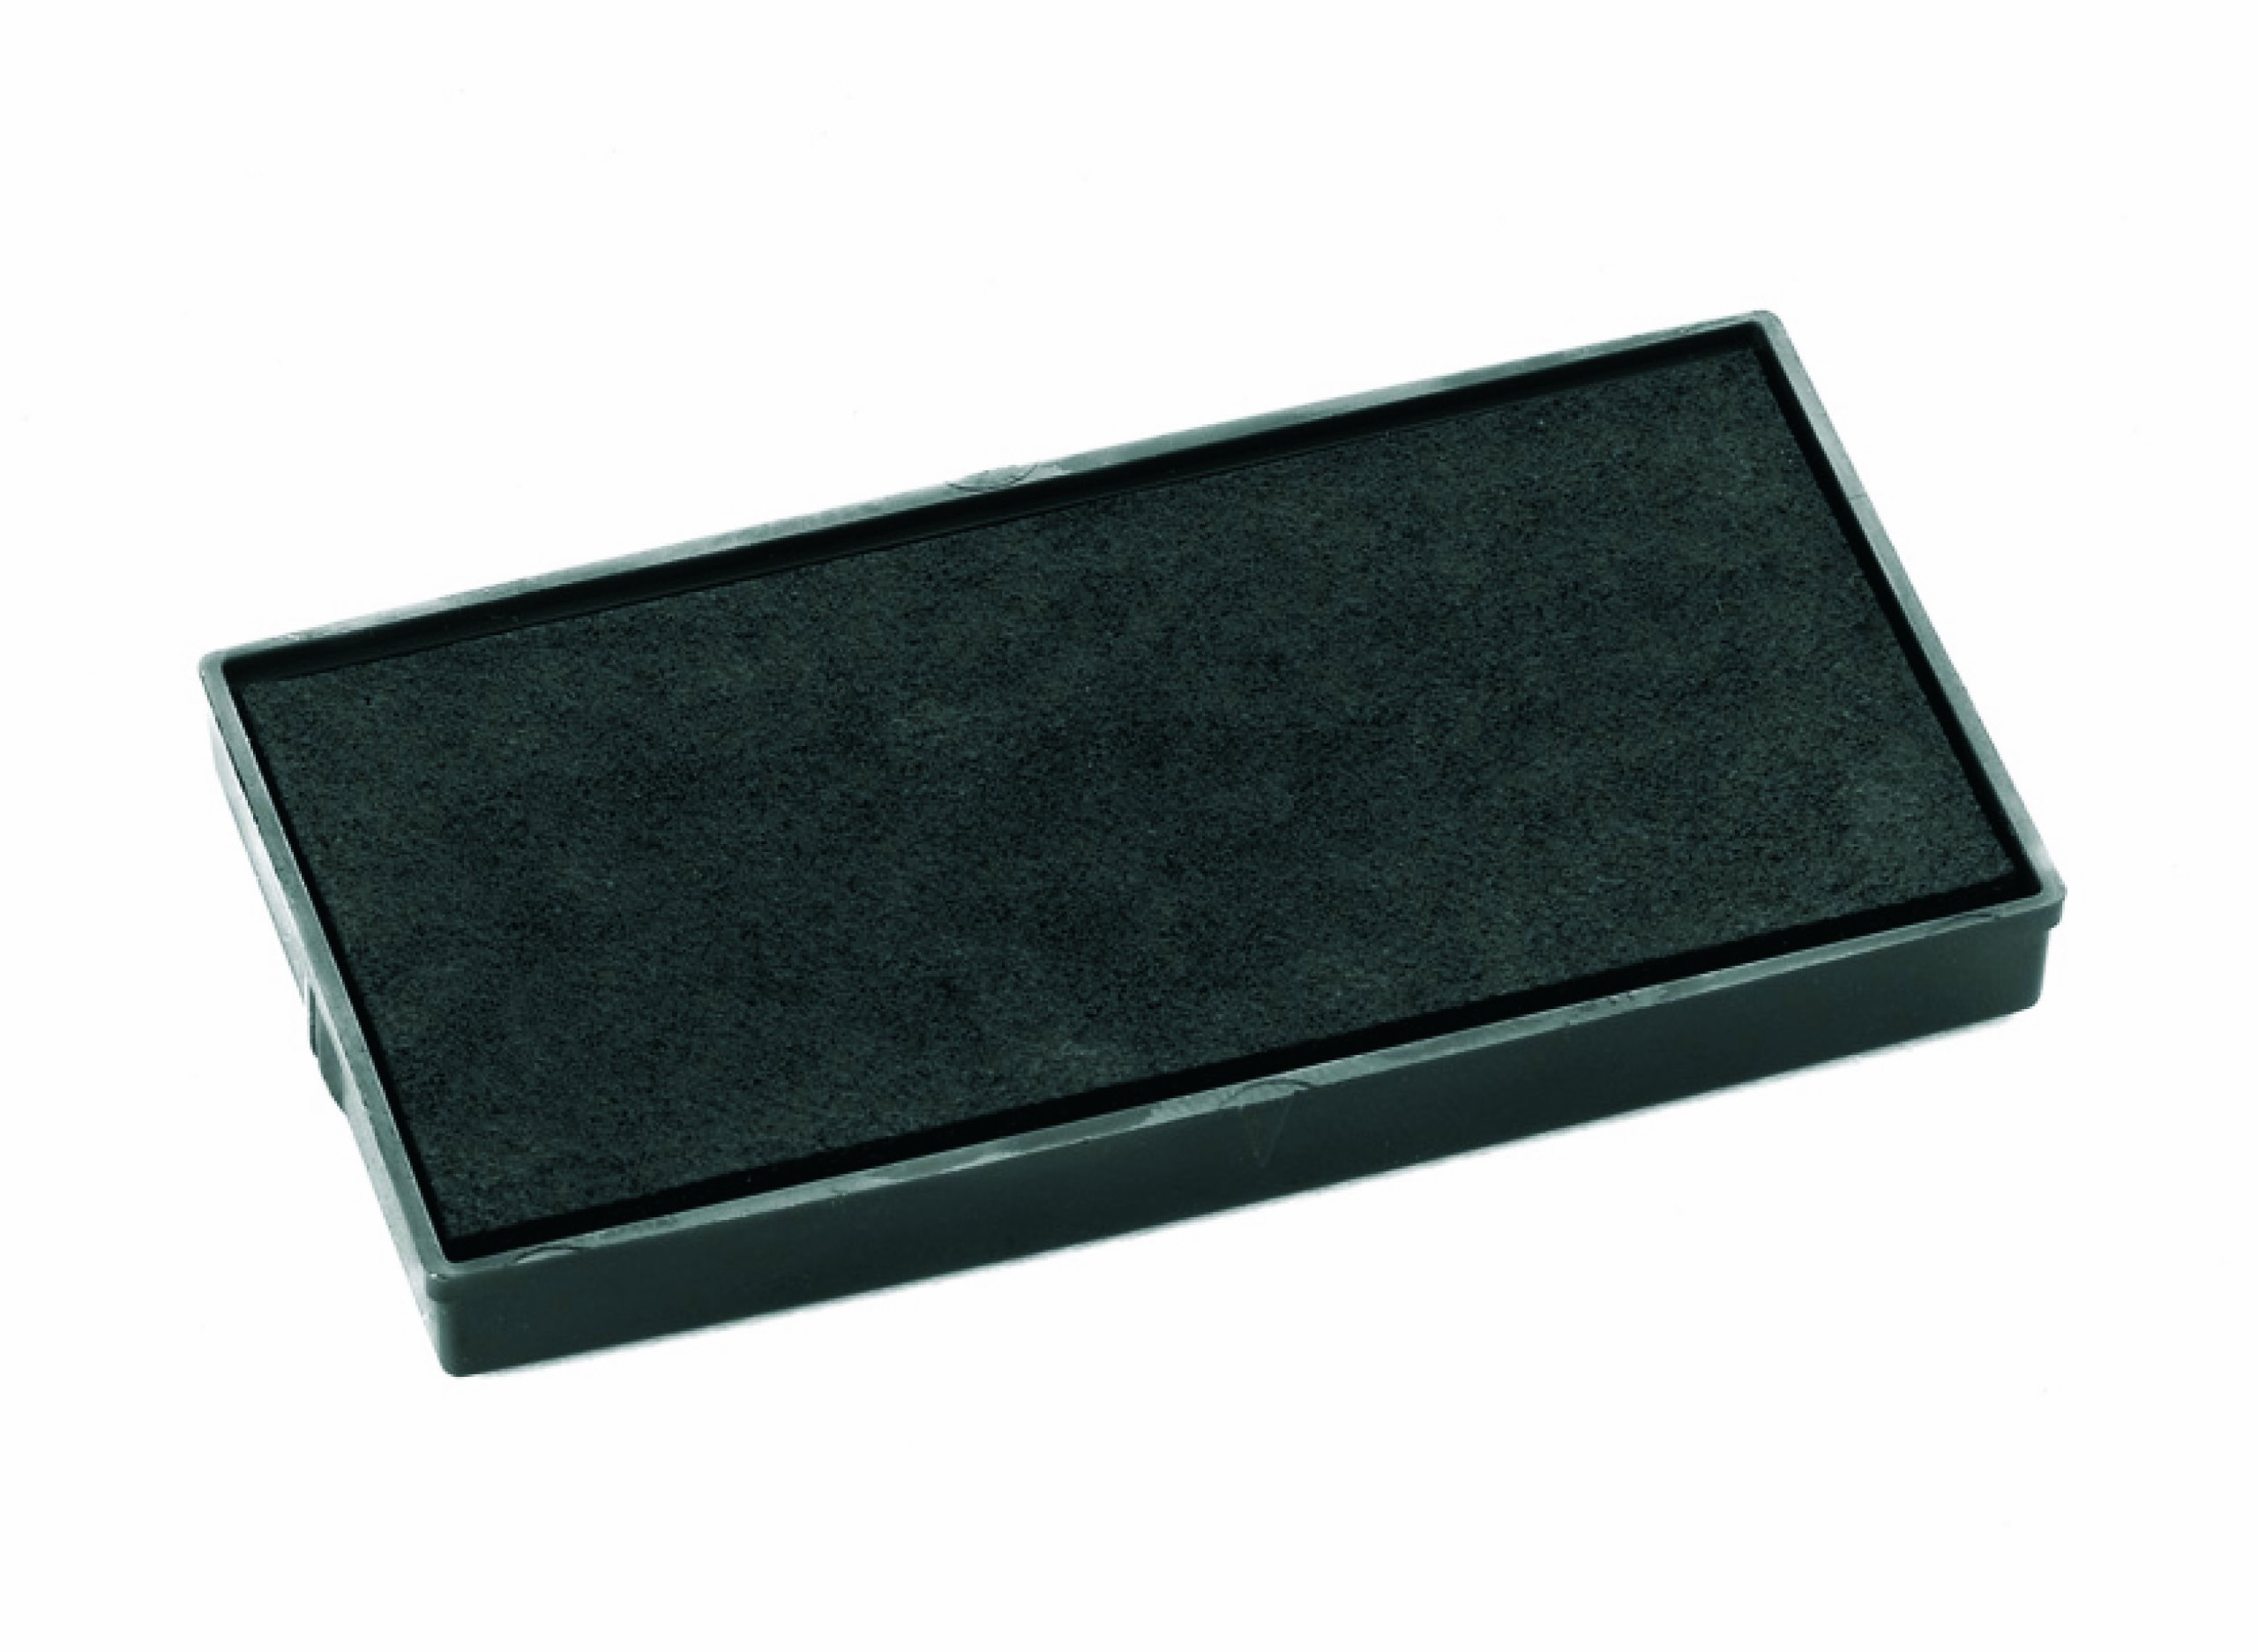 COLOP E/50/1 Replacement Ink Pads for Stamp - Black (Pack of 2) by Colop